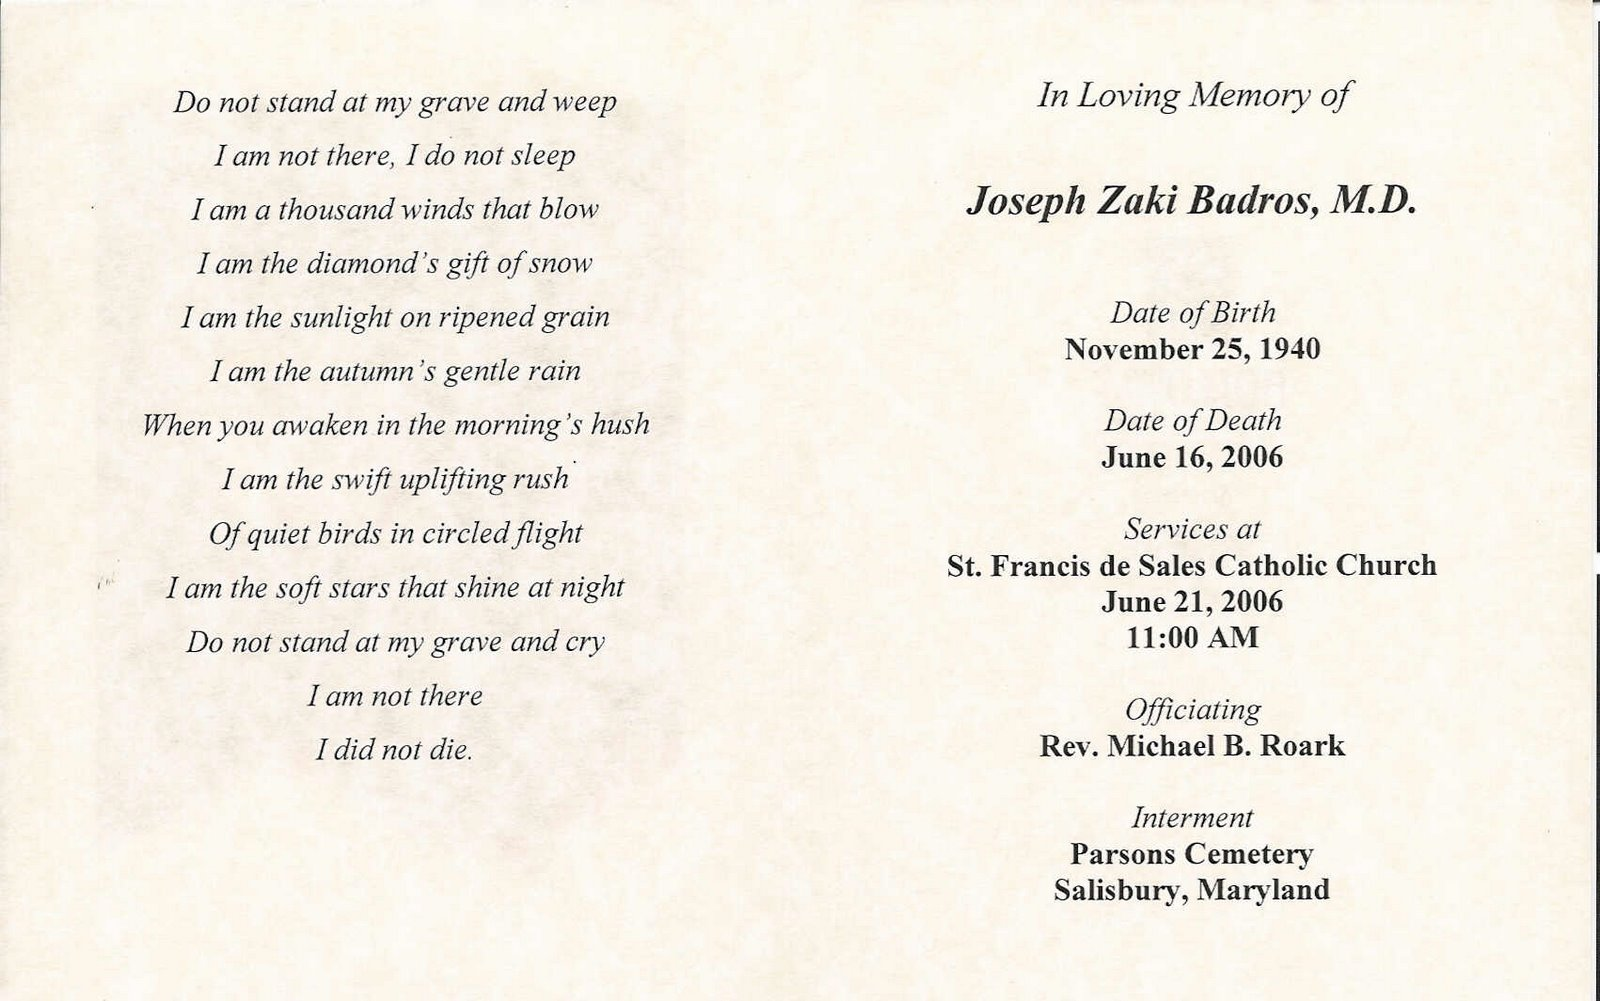 ... de Sales Church Program Service Book Gregory's Eulogy Mark's Eulogy: www.badros.com/joseph-zaki/funeral.html